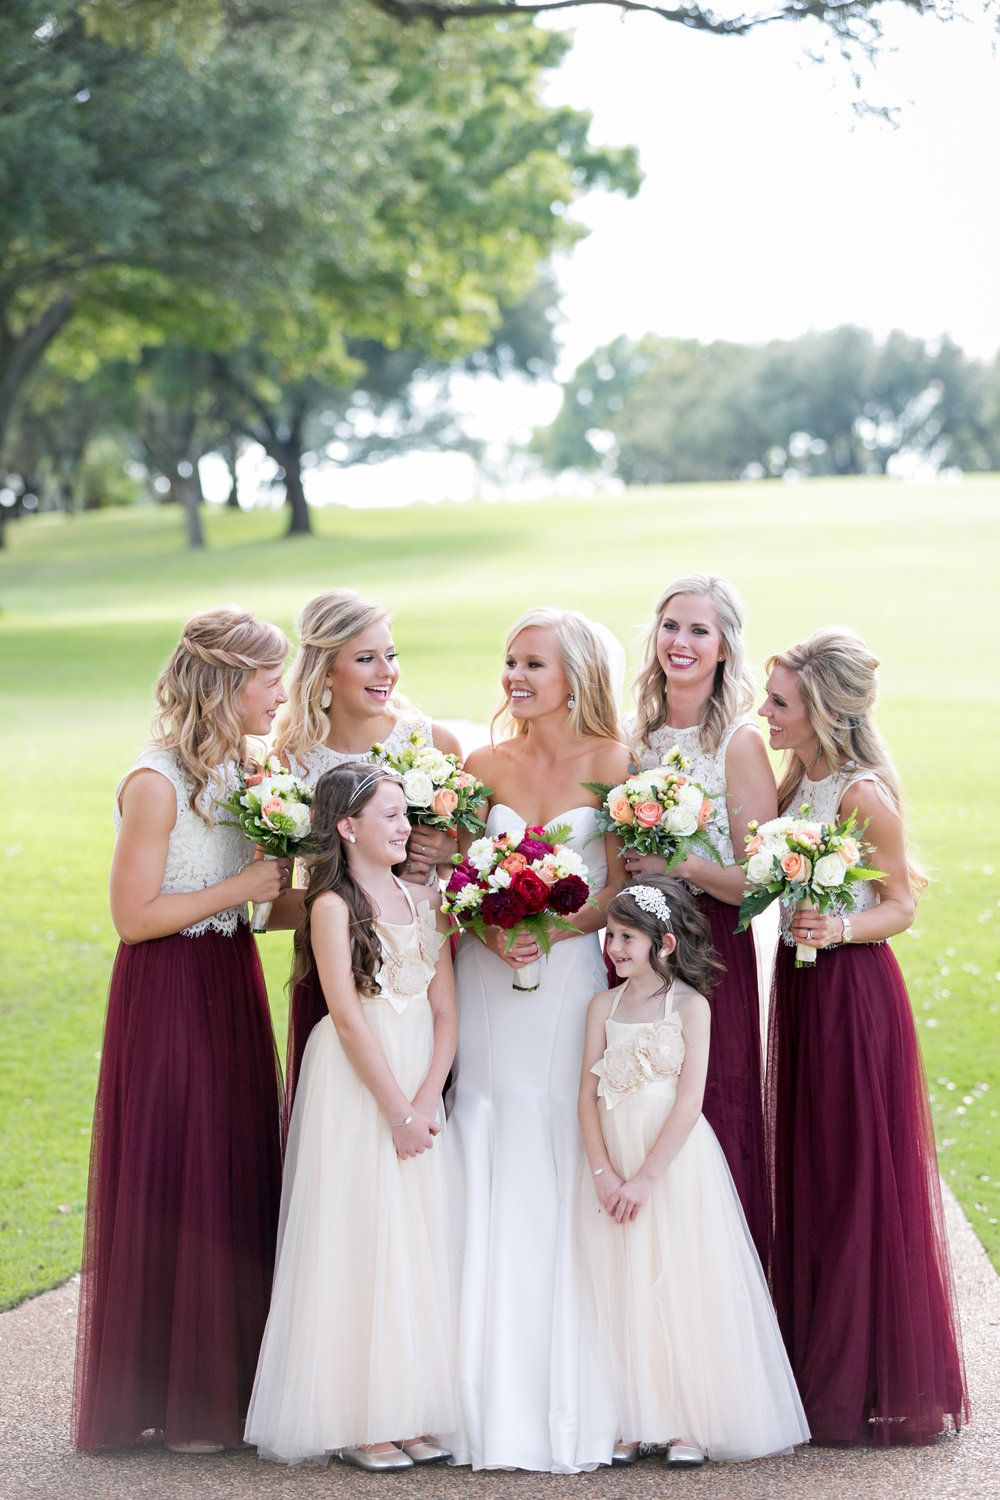 November wedding bridesmaids dresses wedding how tos november wedding bridesmaids dresses ombrellifo Image collections